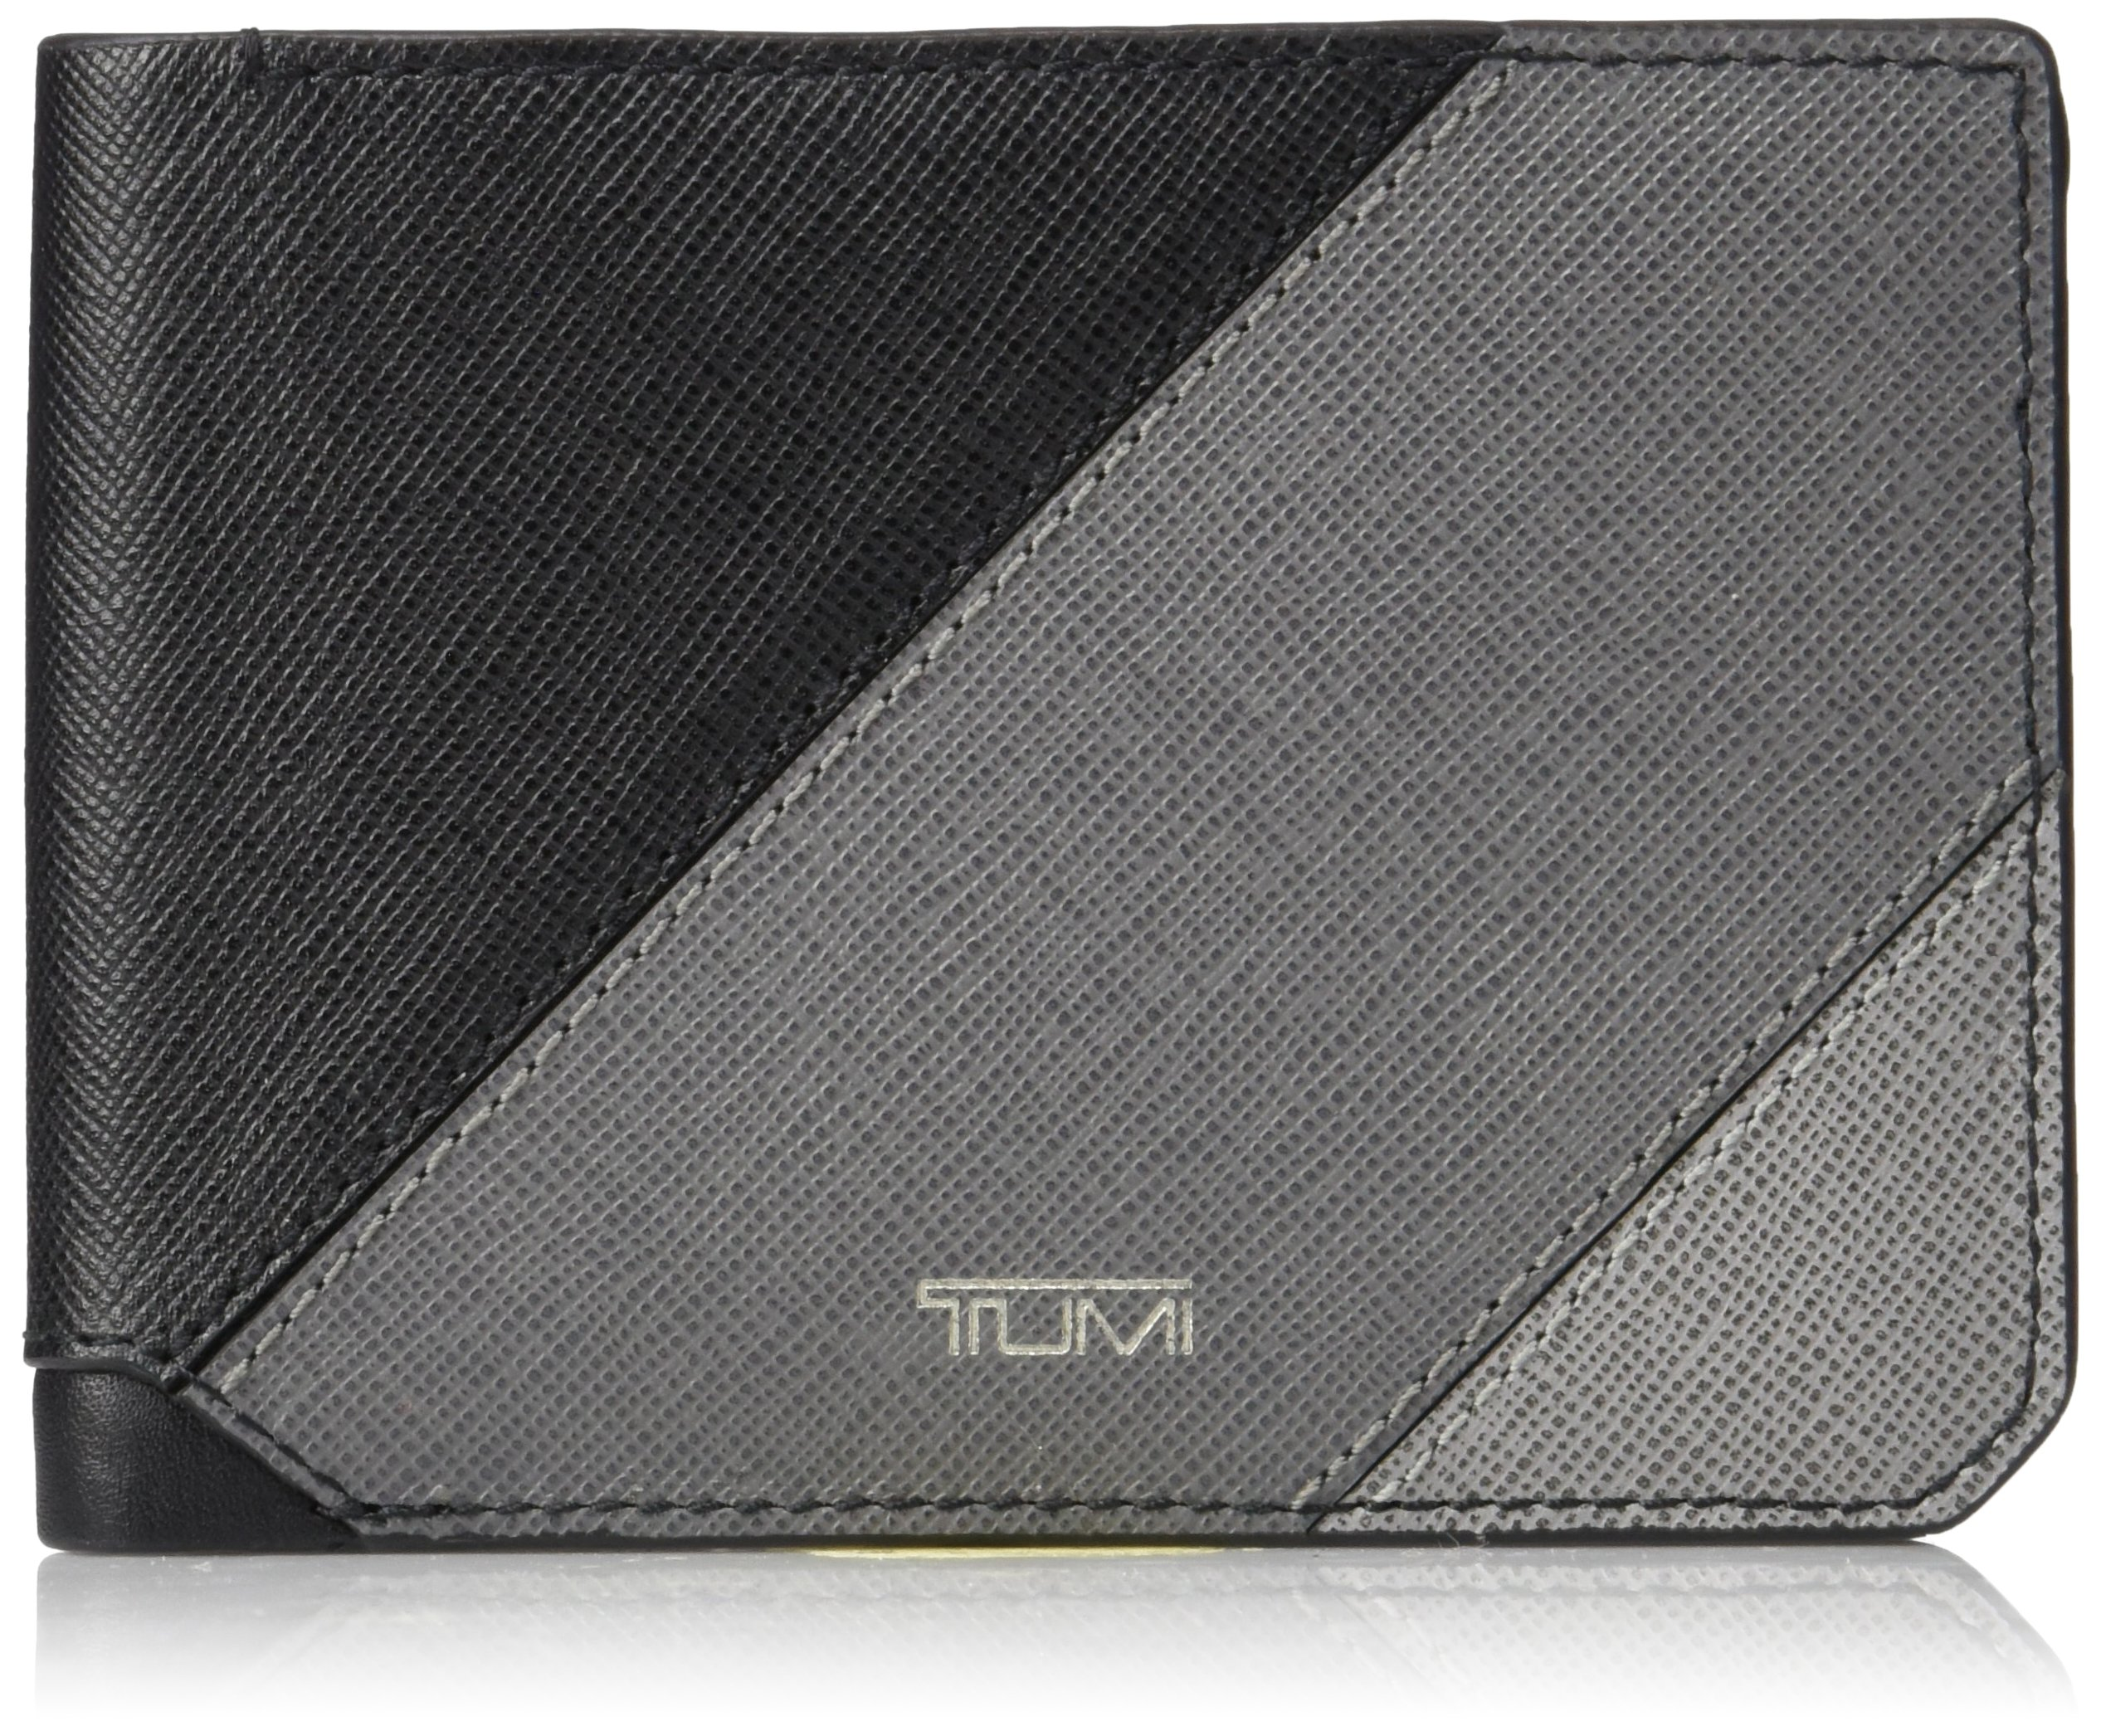 Tumi Men's Mason Double Billfold Wallet With Rfid Blocking, Grey Pieced Leather, One Size